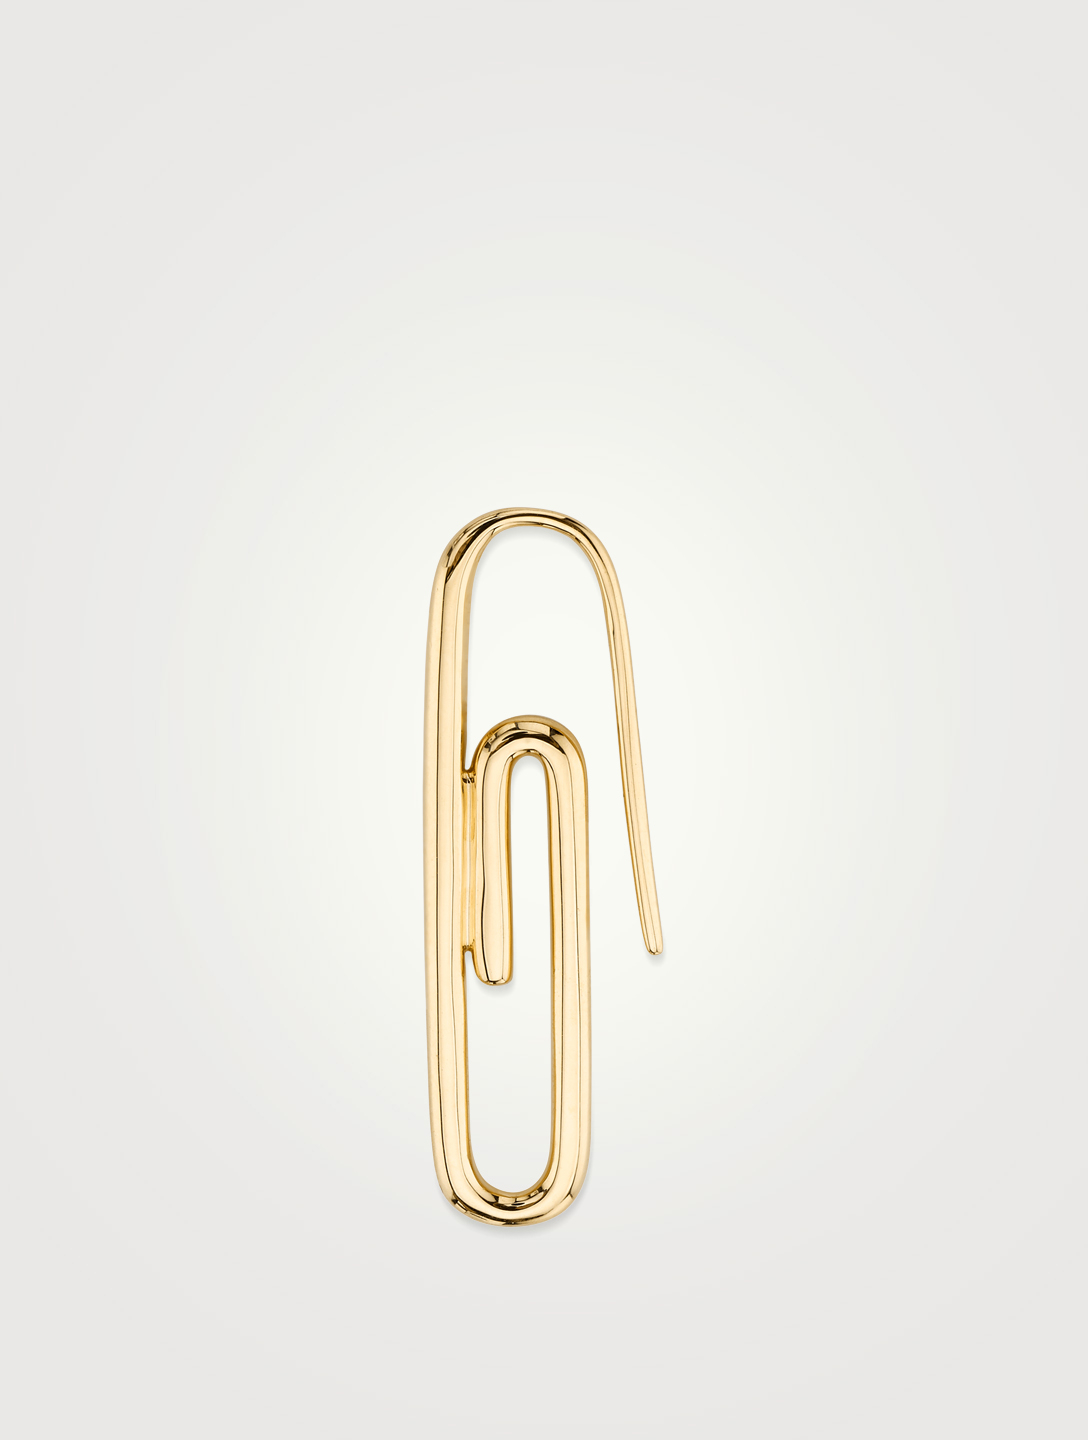 ANITA KO 18K Gold Paper Clip Earring Womens Gold